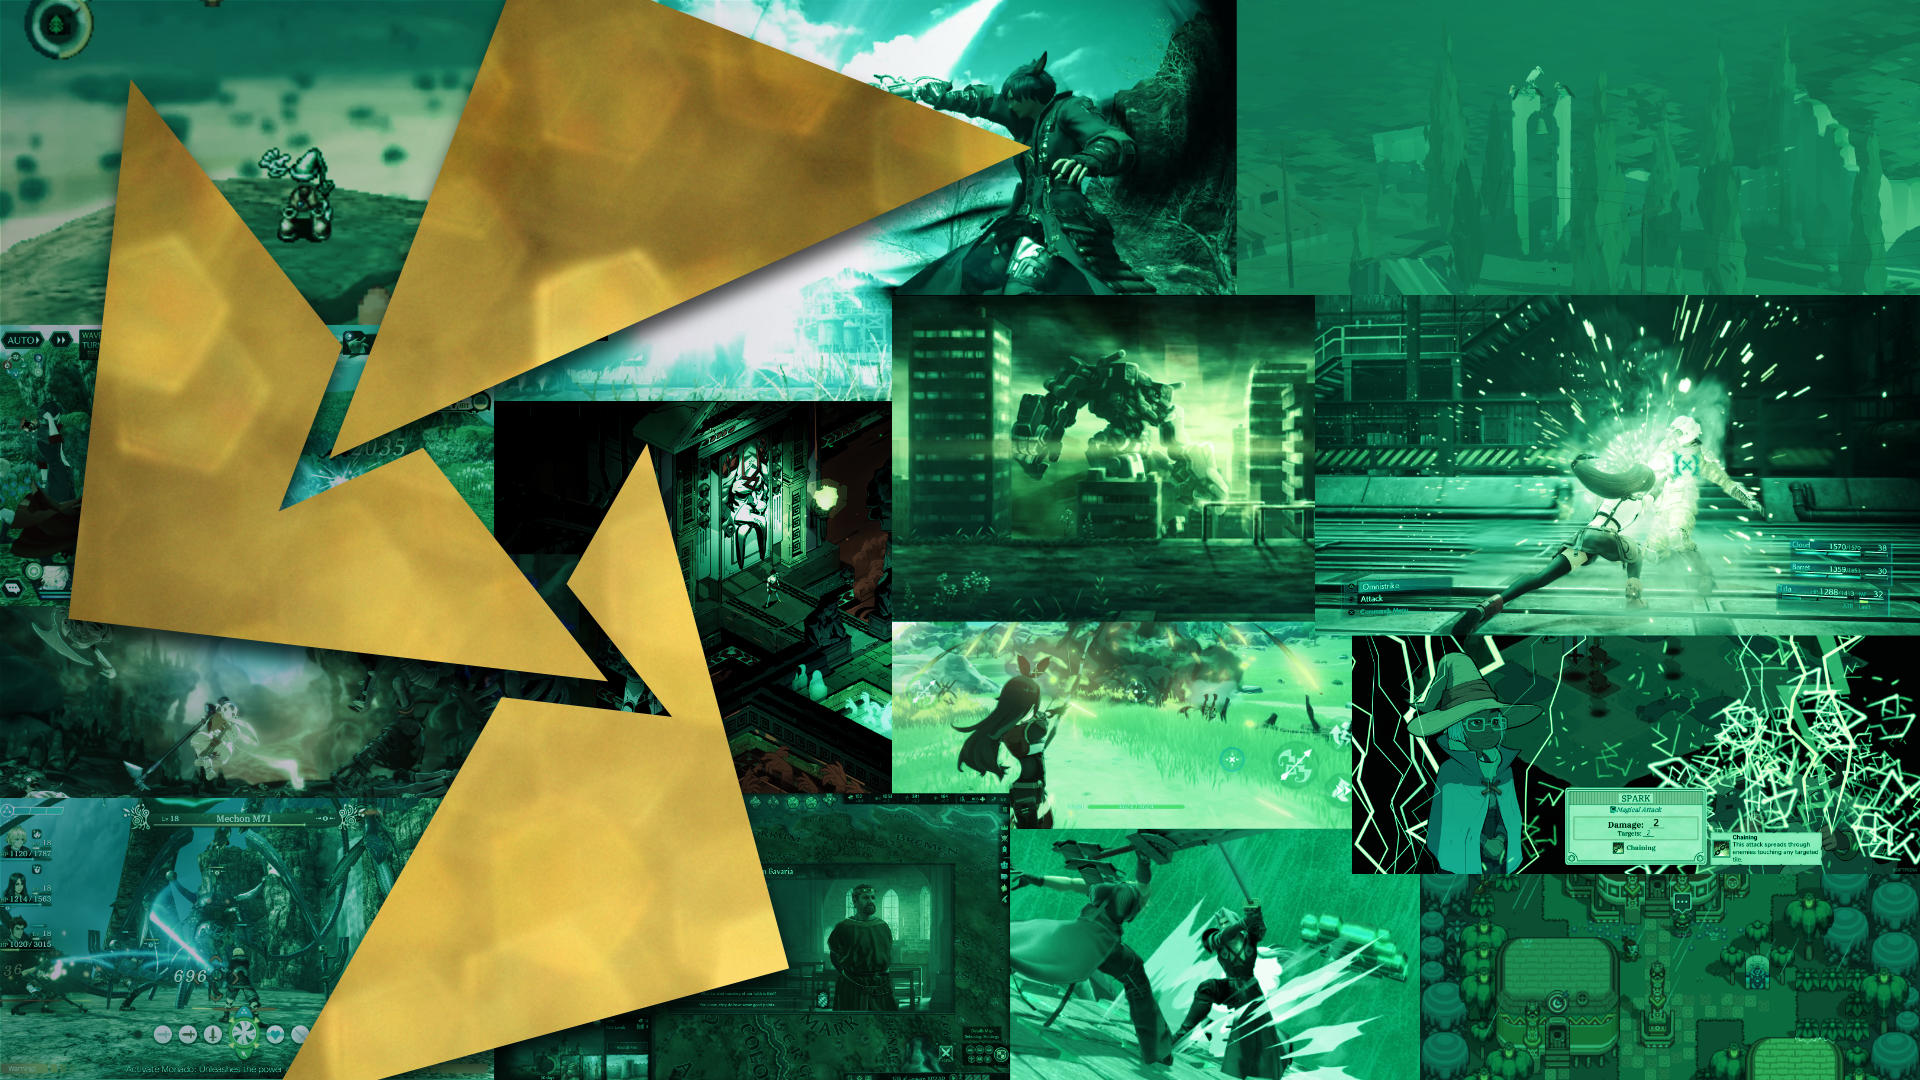 A collage of RPG video game screenshots in a green hue.